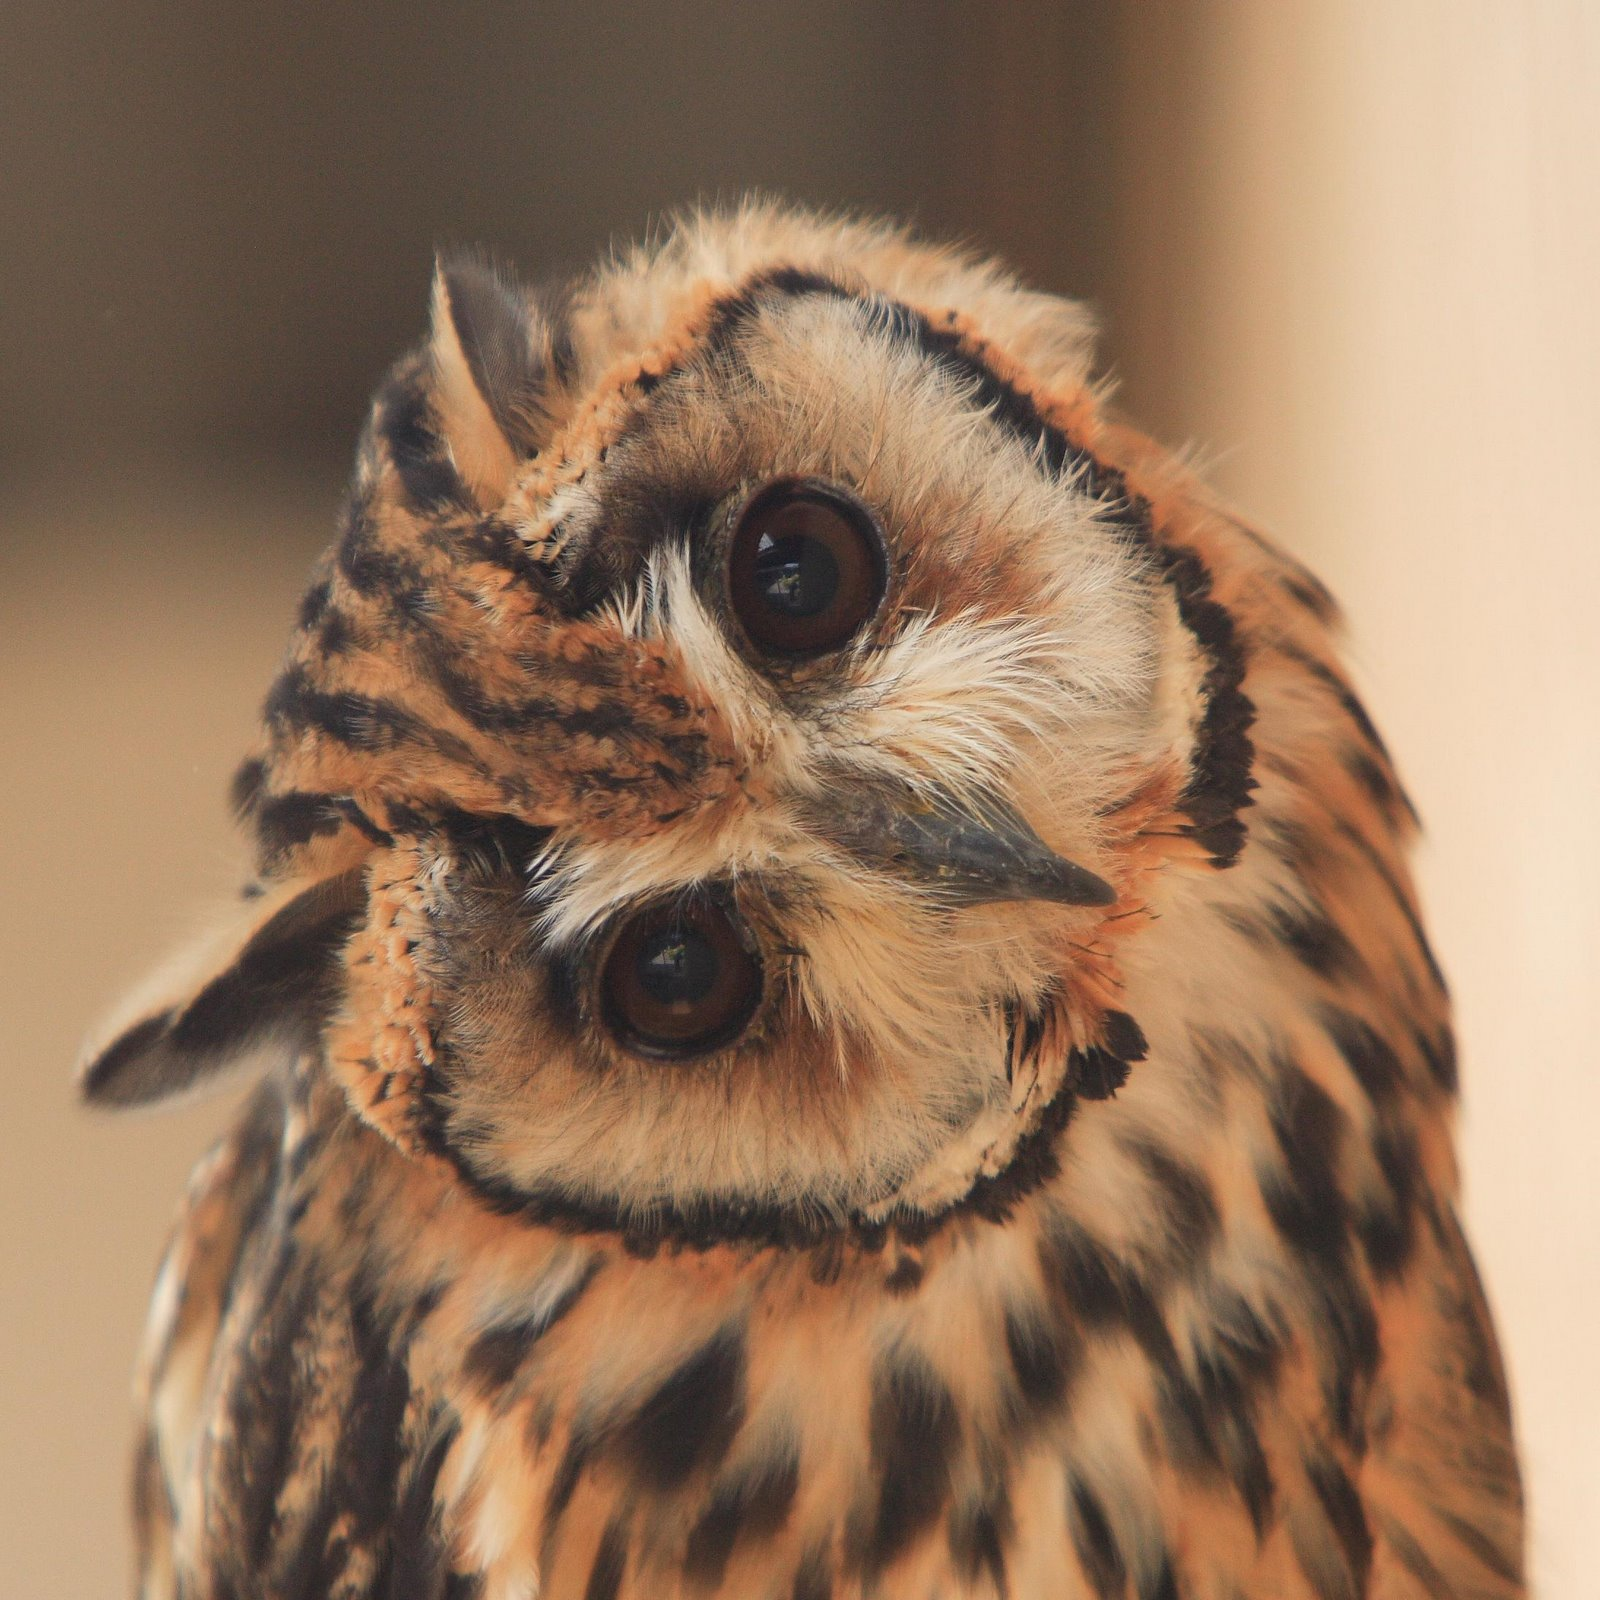 [Spectacled+Owl+3]